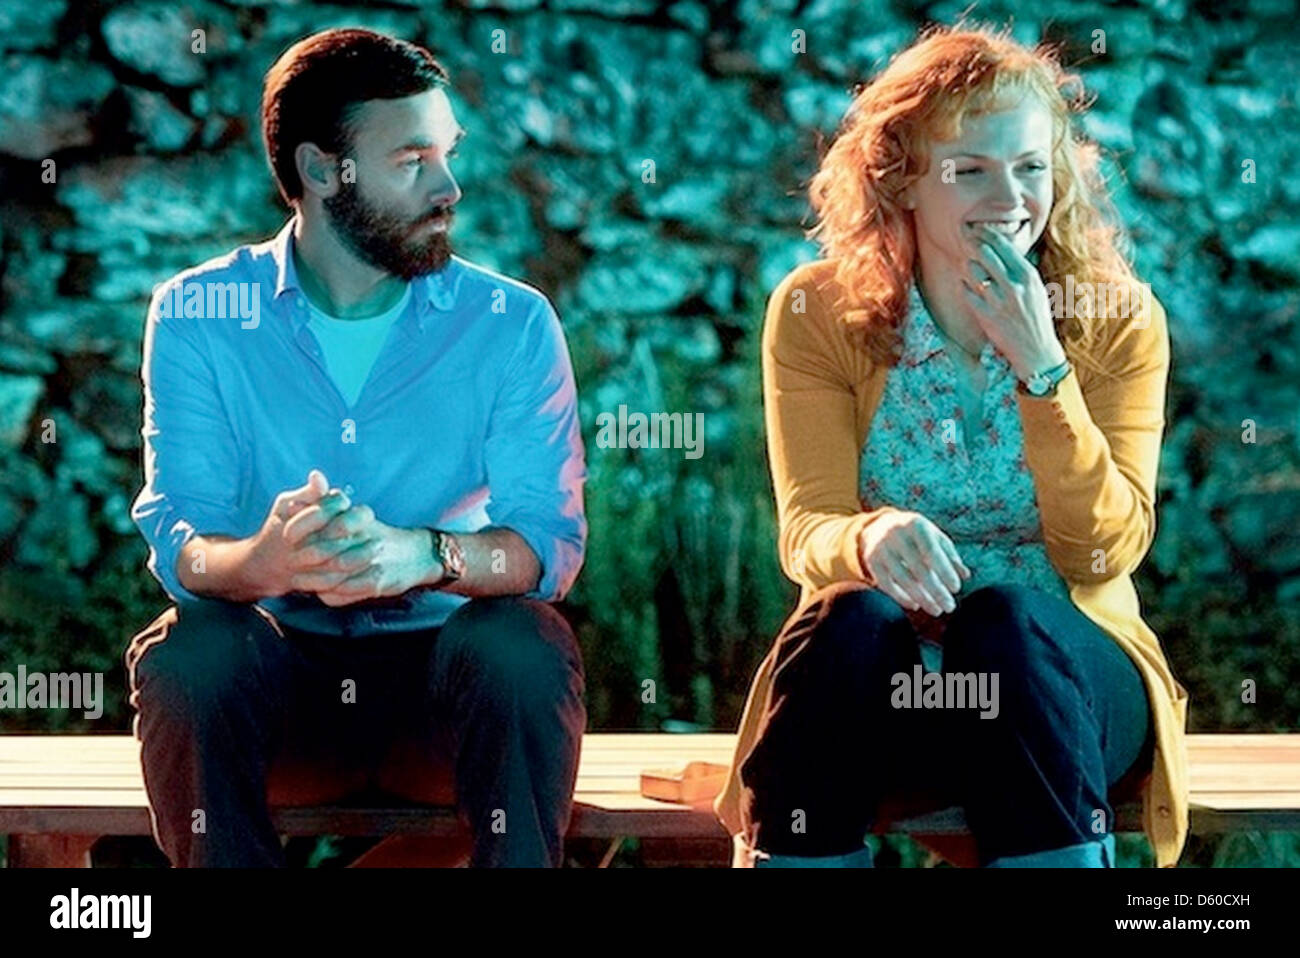 RUN & JUMP 2013 Global Screen film with Will Forte and Maxine Peake - Stock Image